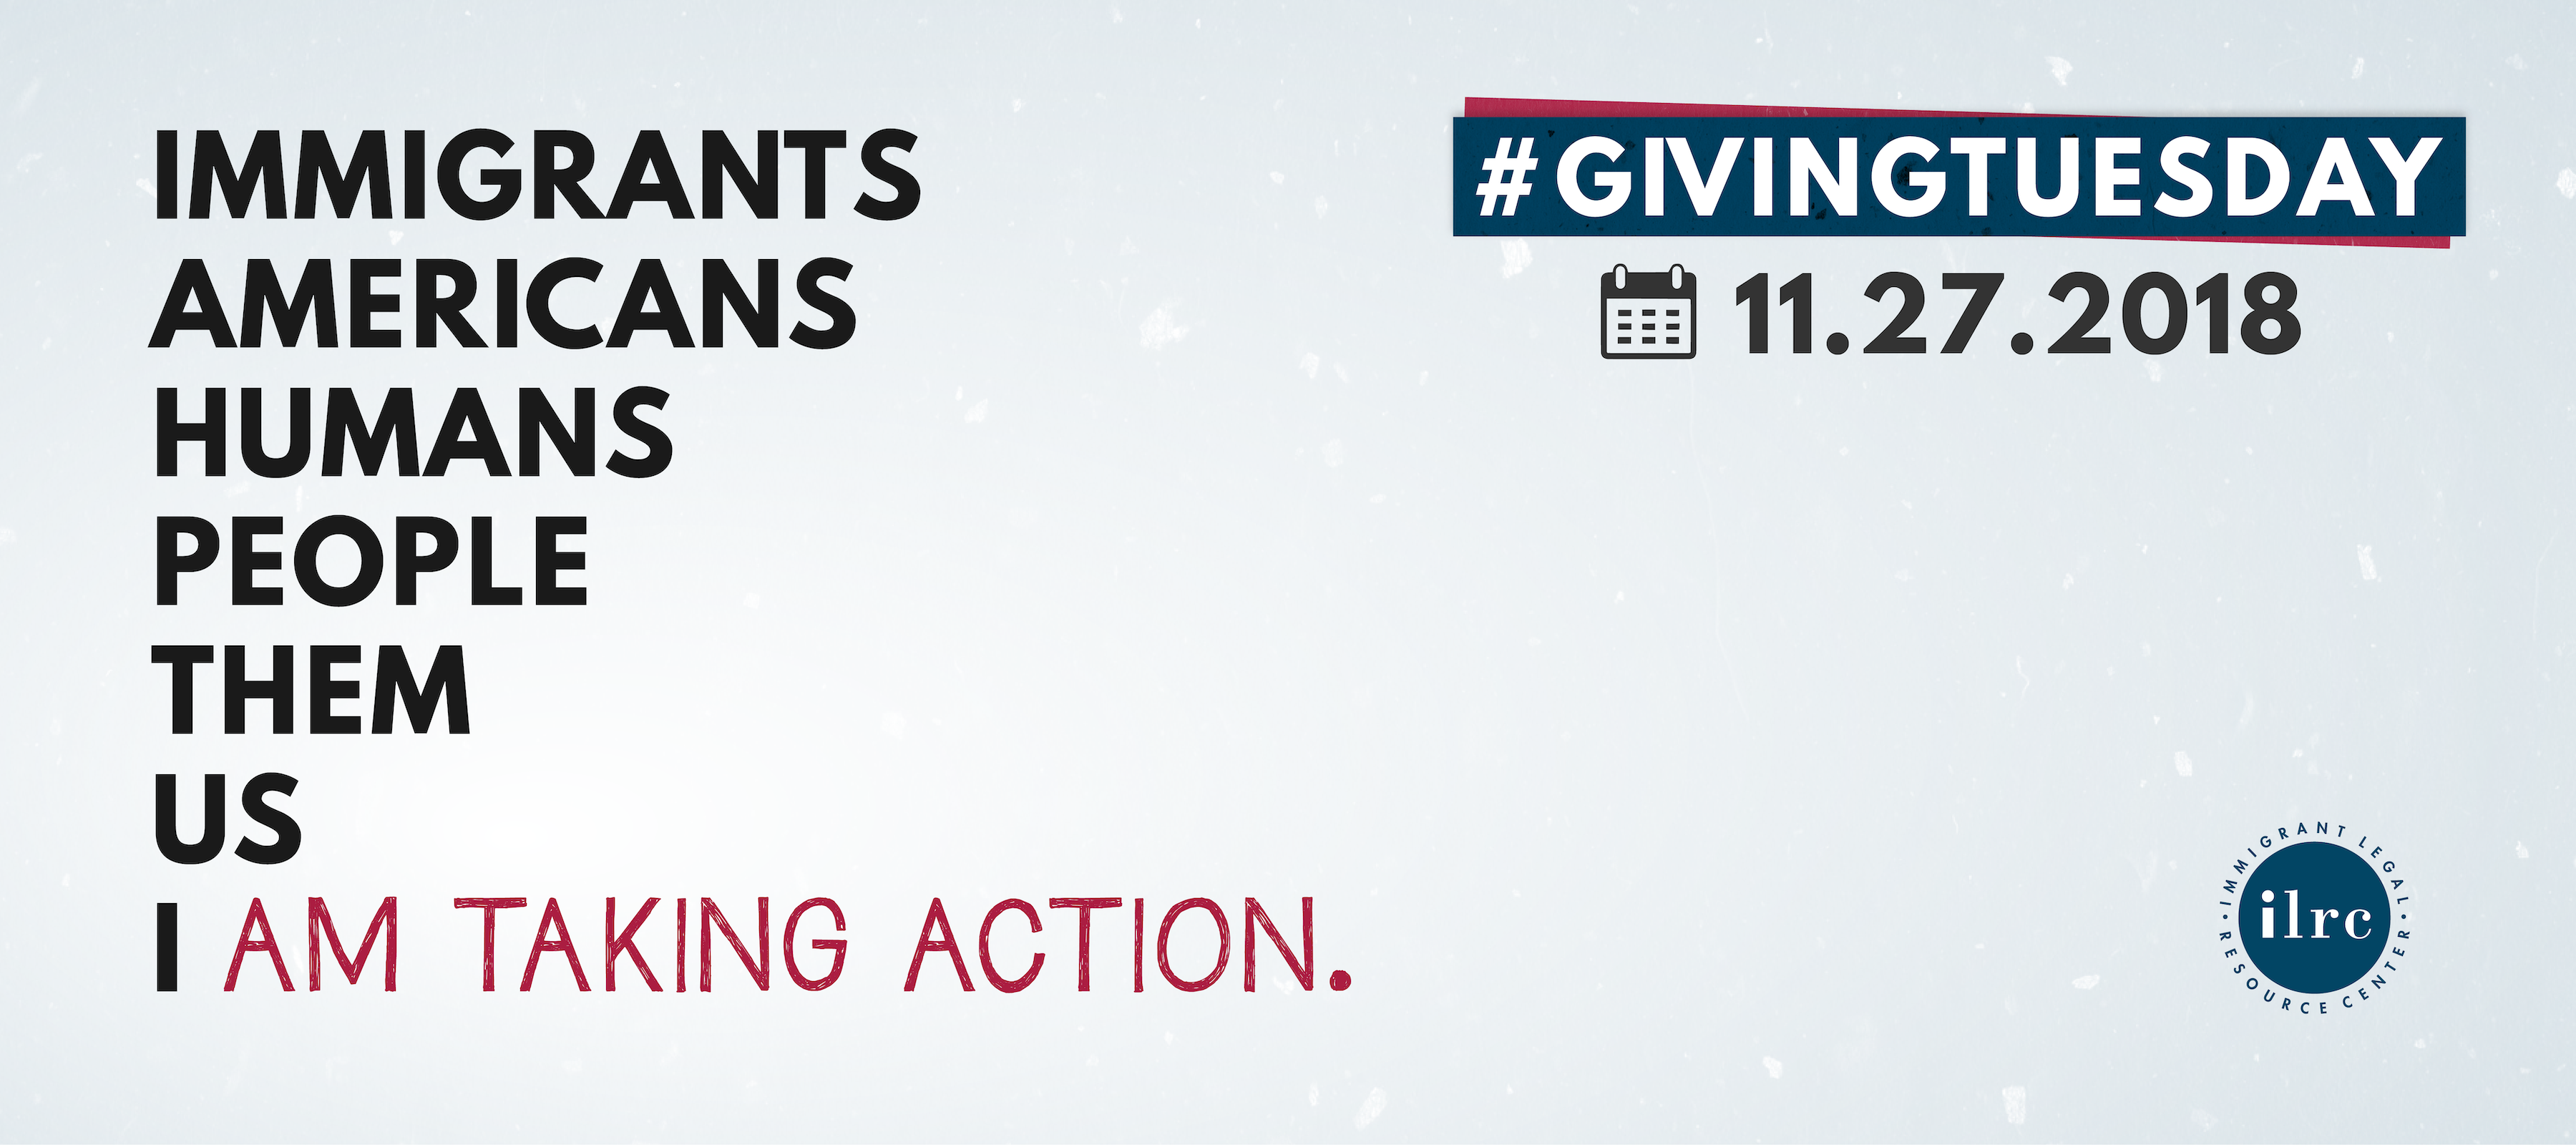 givingtuesday_2018_carousel.png